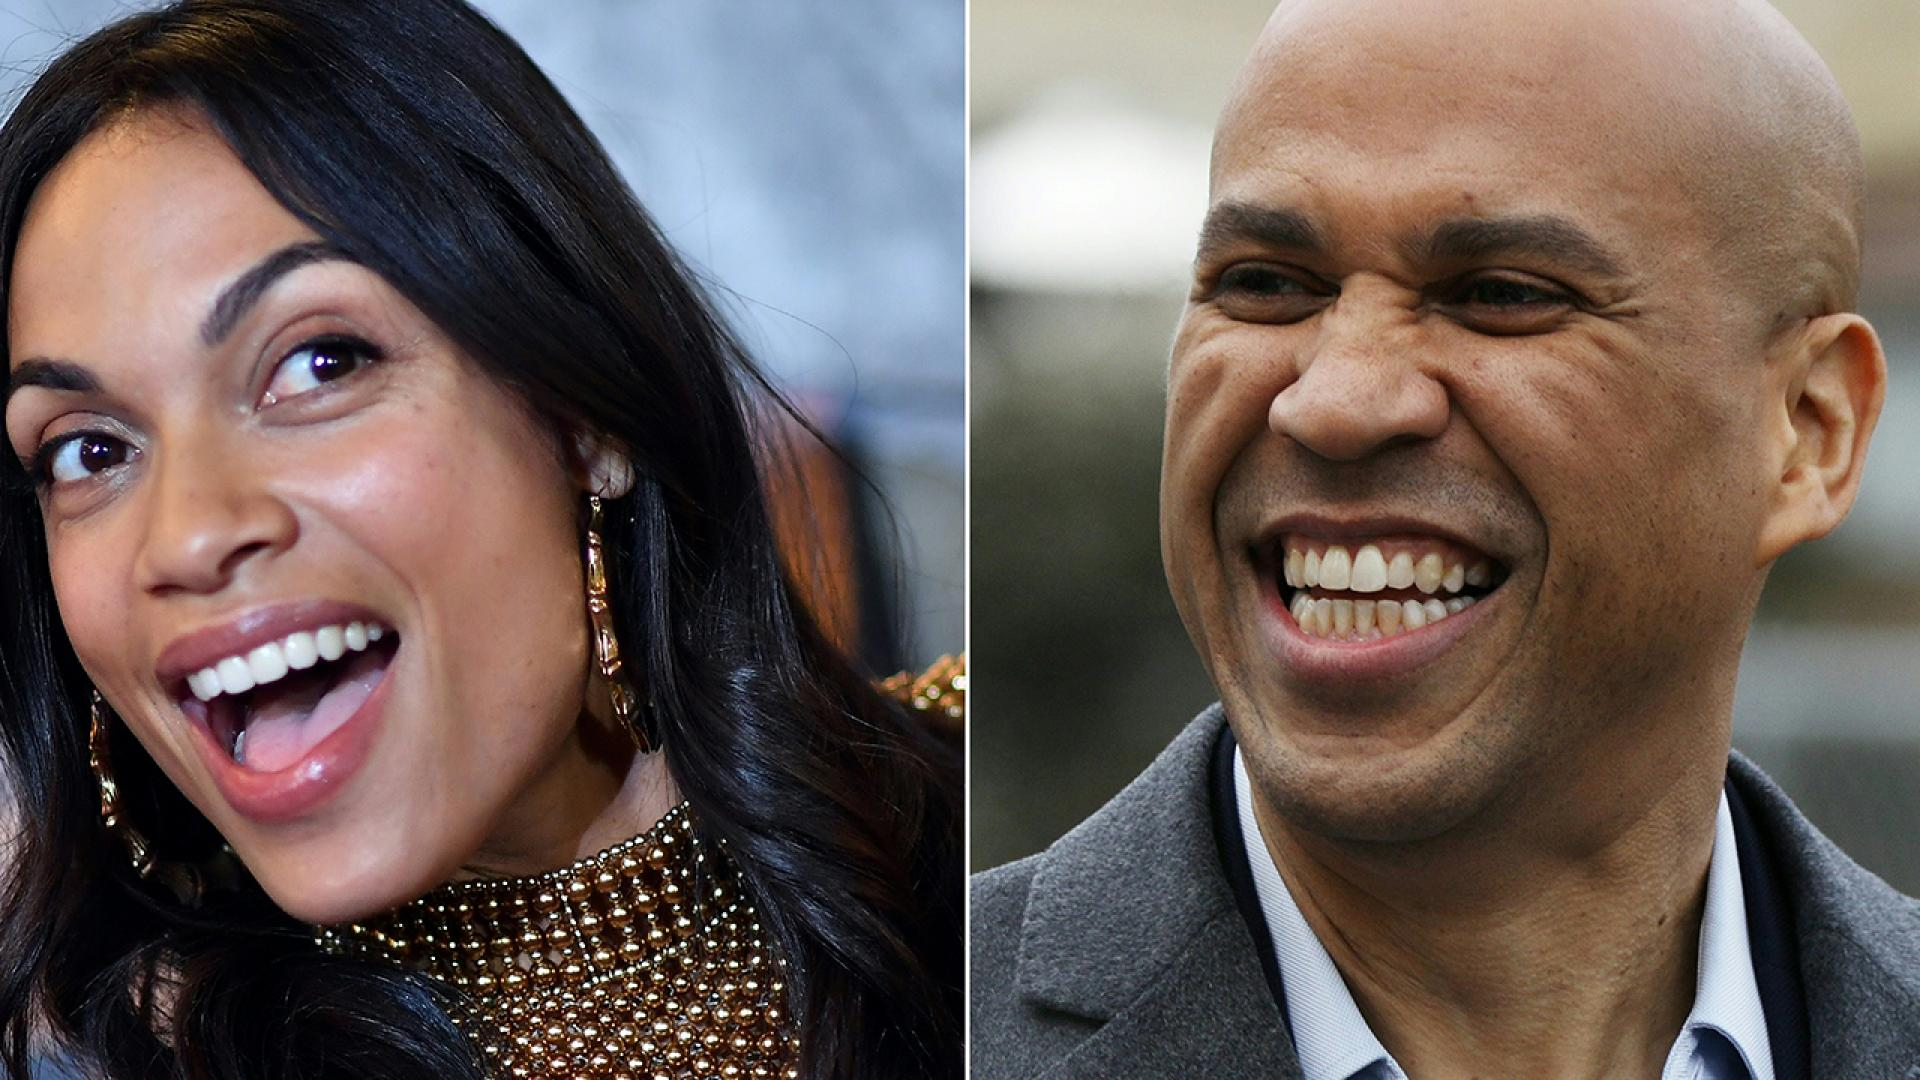 Cory Booker (right) is dating Rosario Dawson (right).